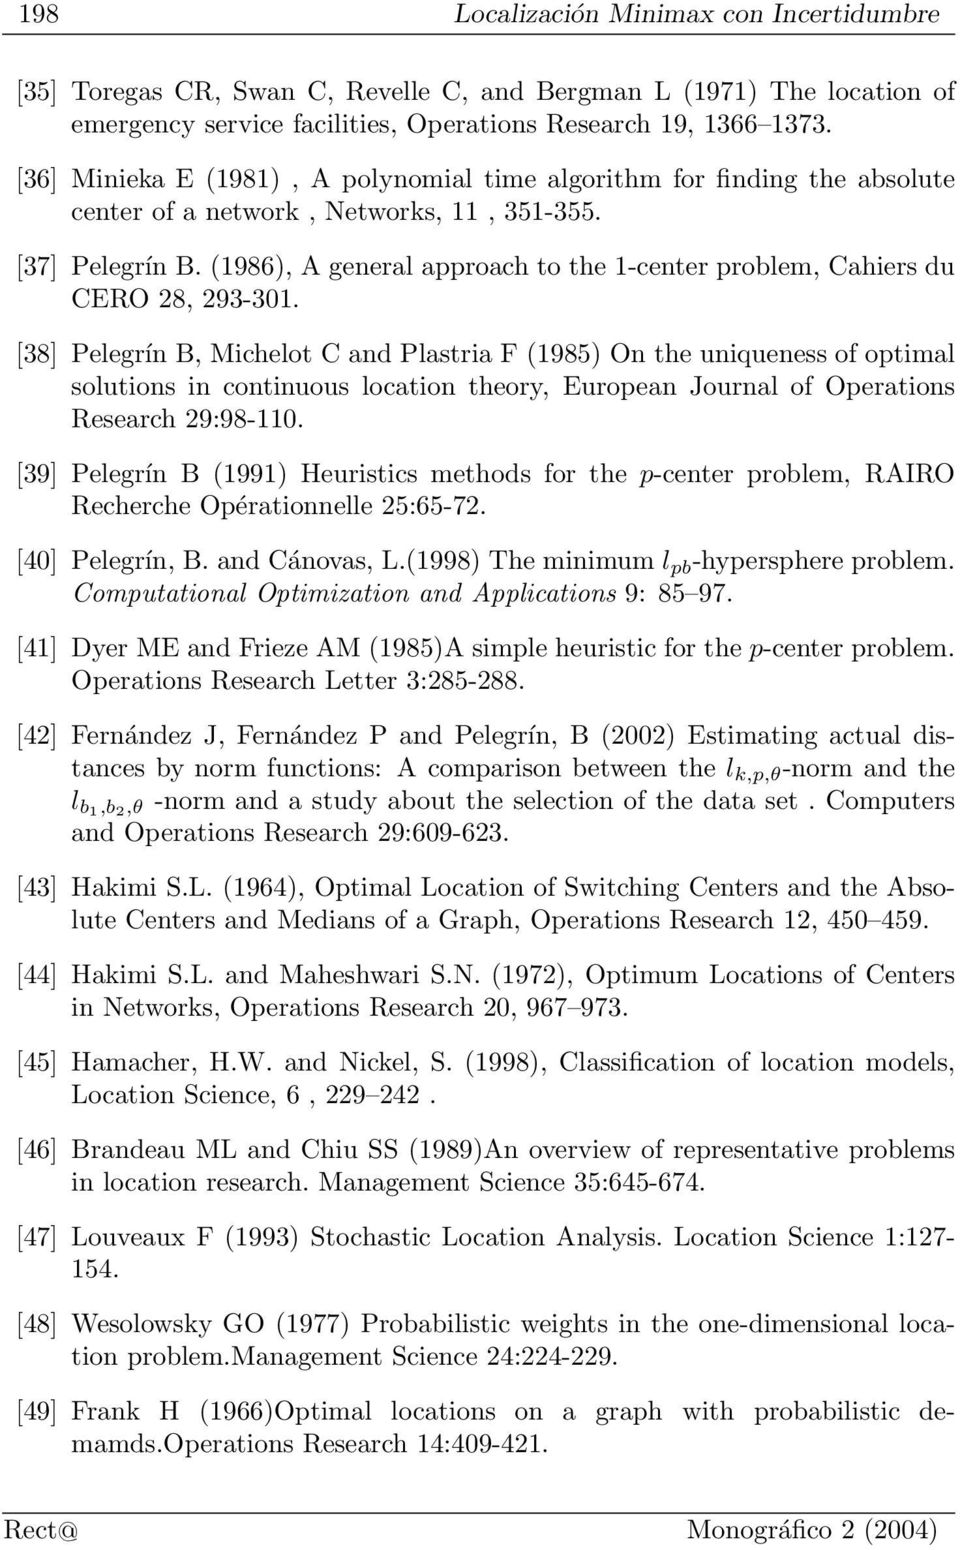 (1986), A general approach to the 1-center problem, Cahiers du CERO 28, 293-301.